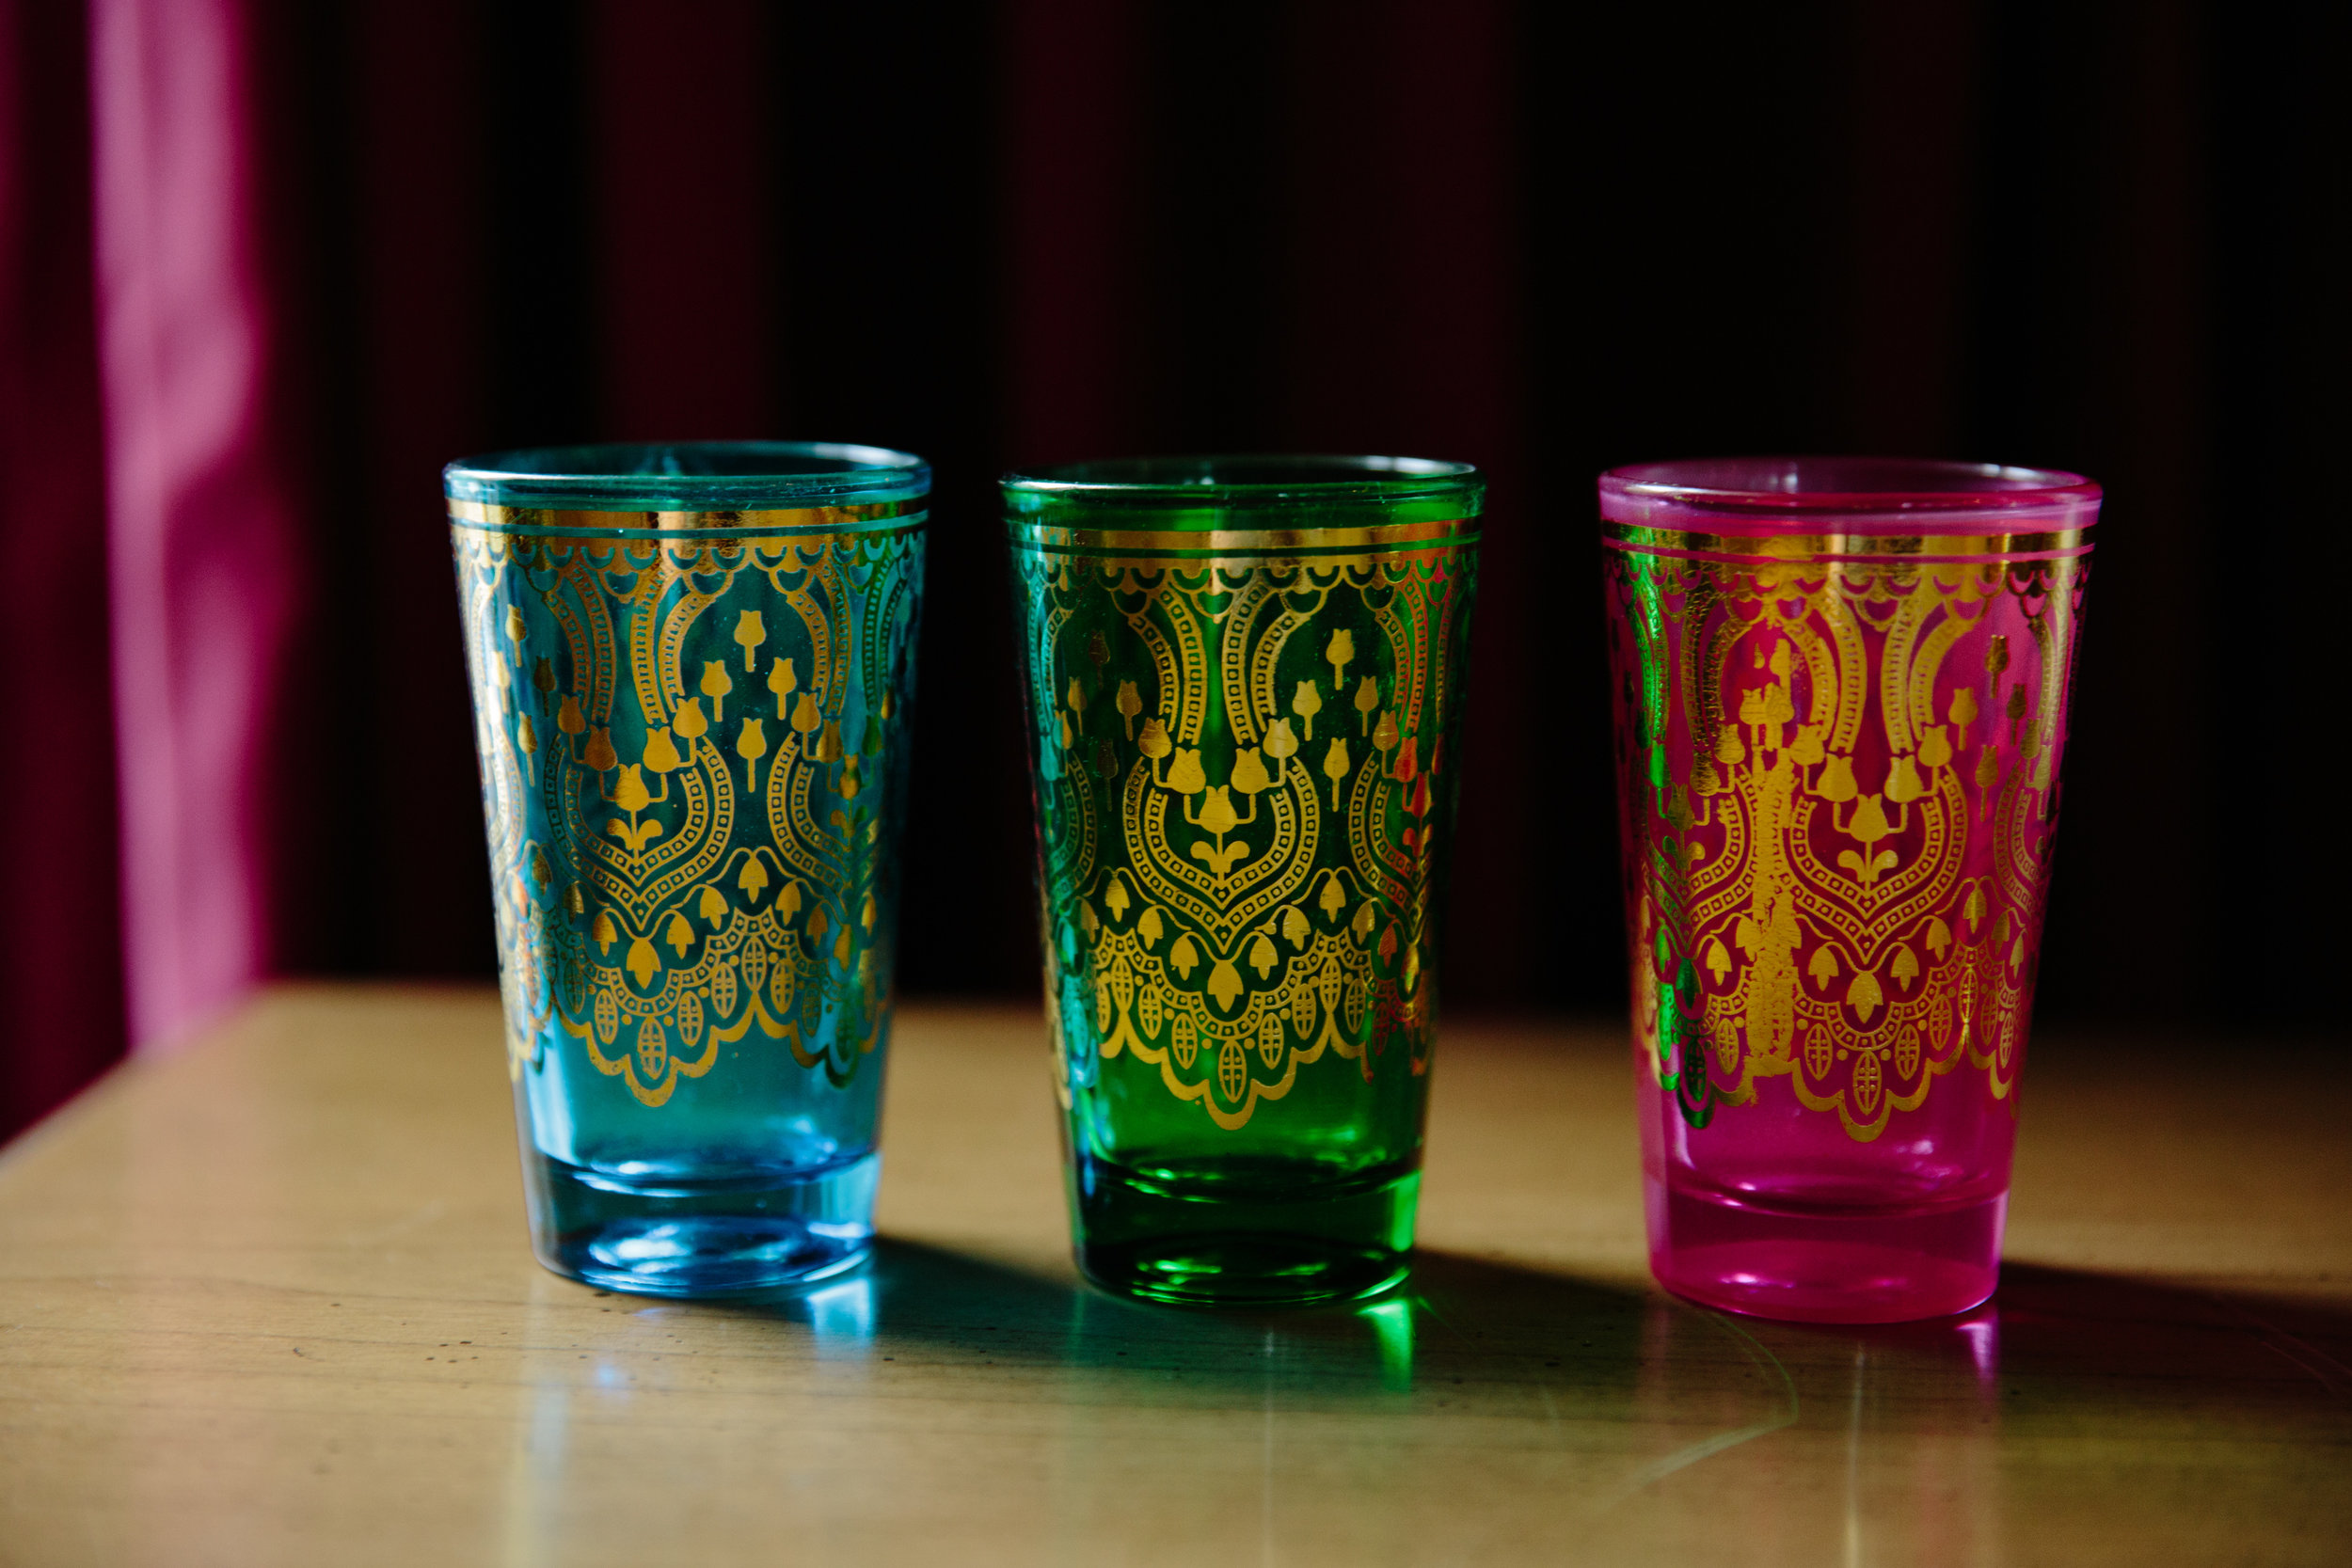 Color options for the moroccan tea glasses